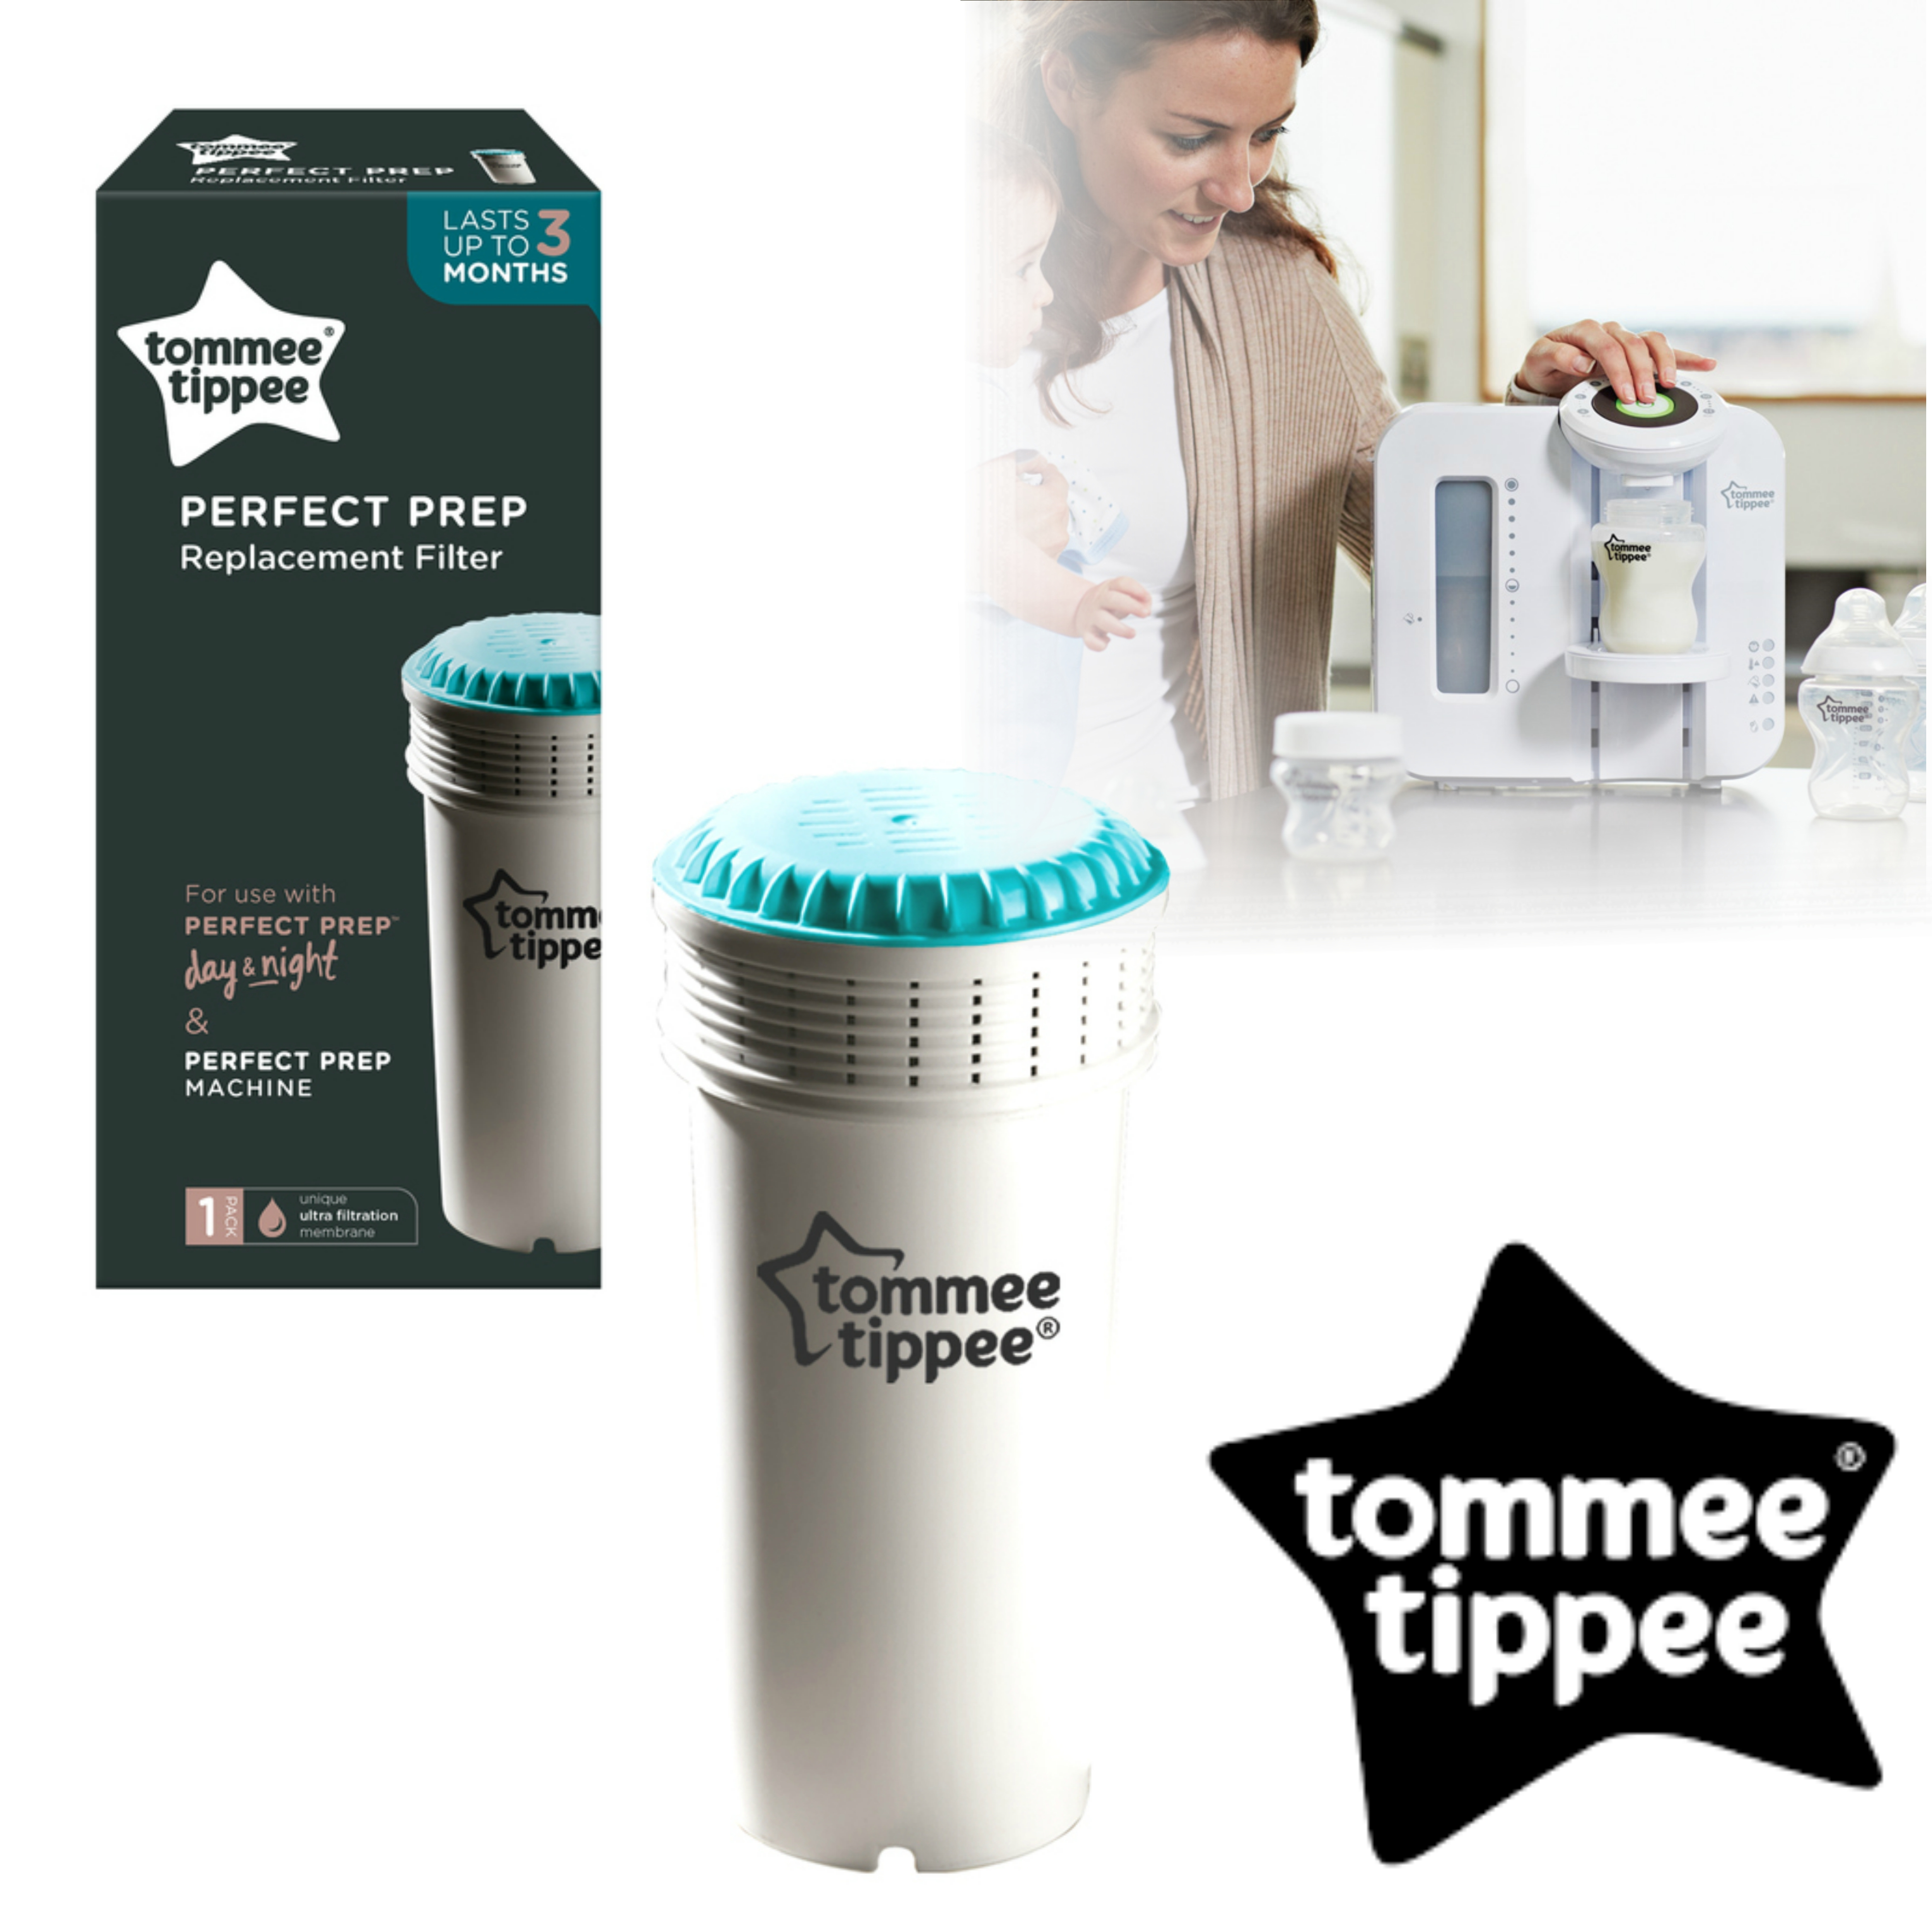 Tommee Tippee Perfect Prep Replacement Filter | Cleans Water for Baby's Formula | New